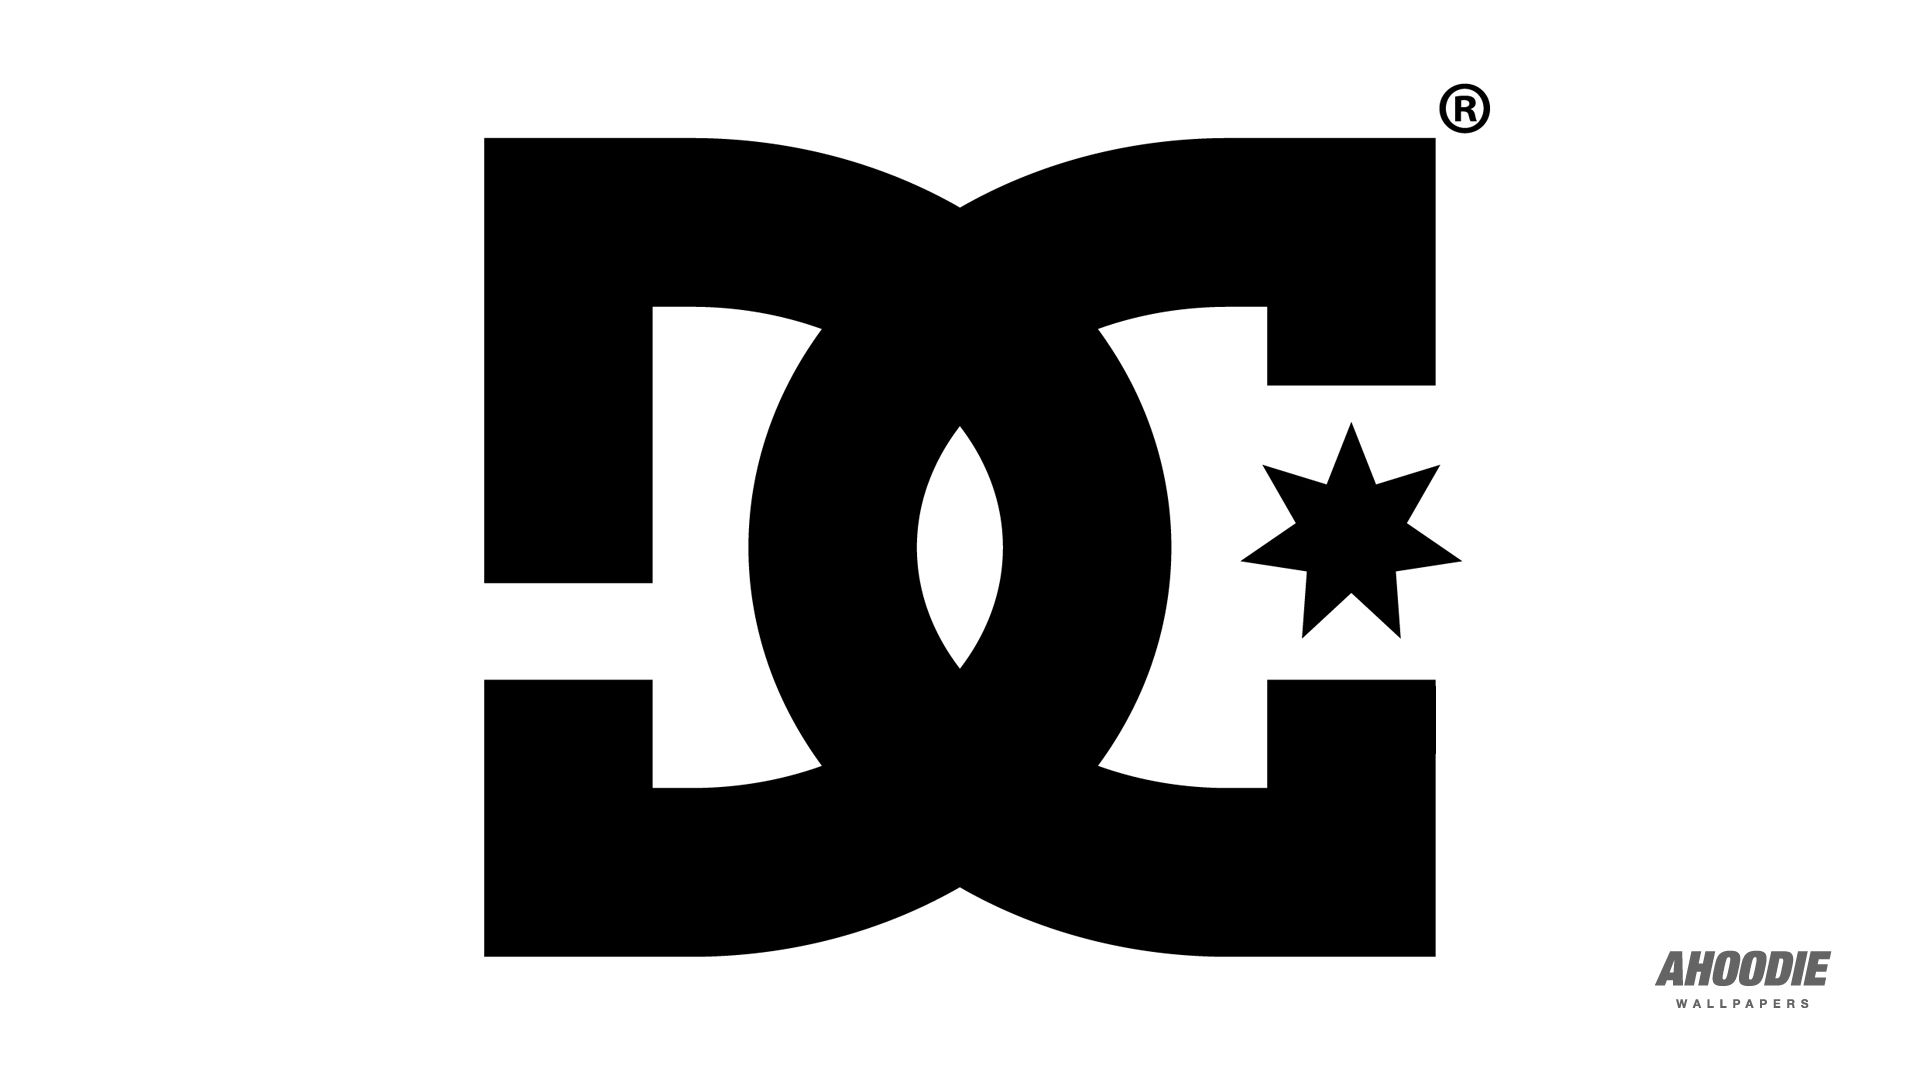 iphone wall paper dc shoes black logo white wallpaper hd high resolution 12458